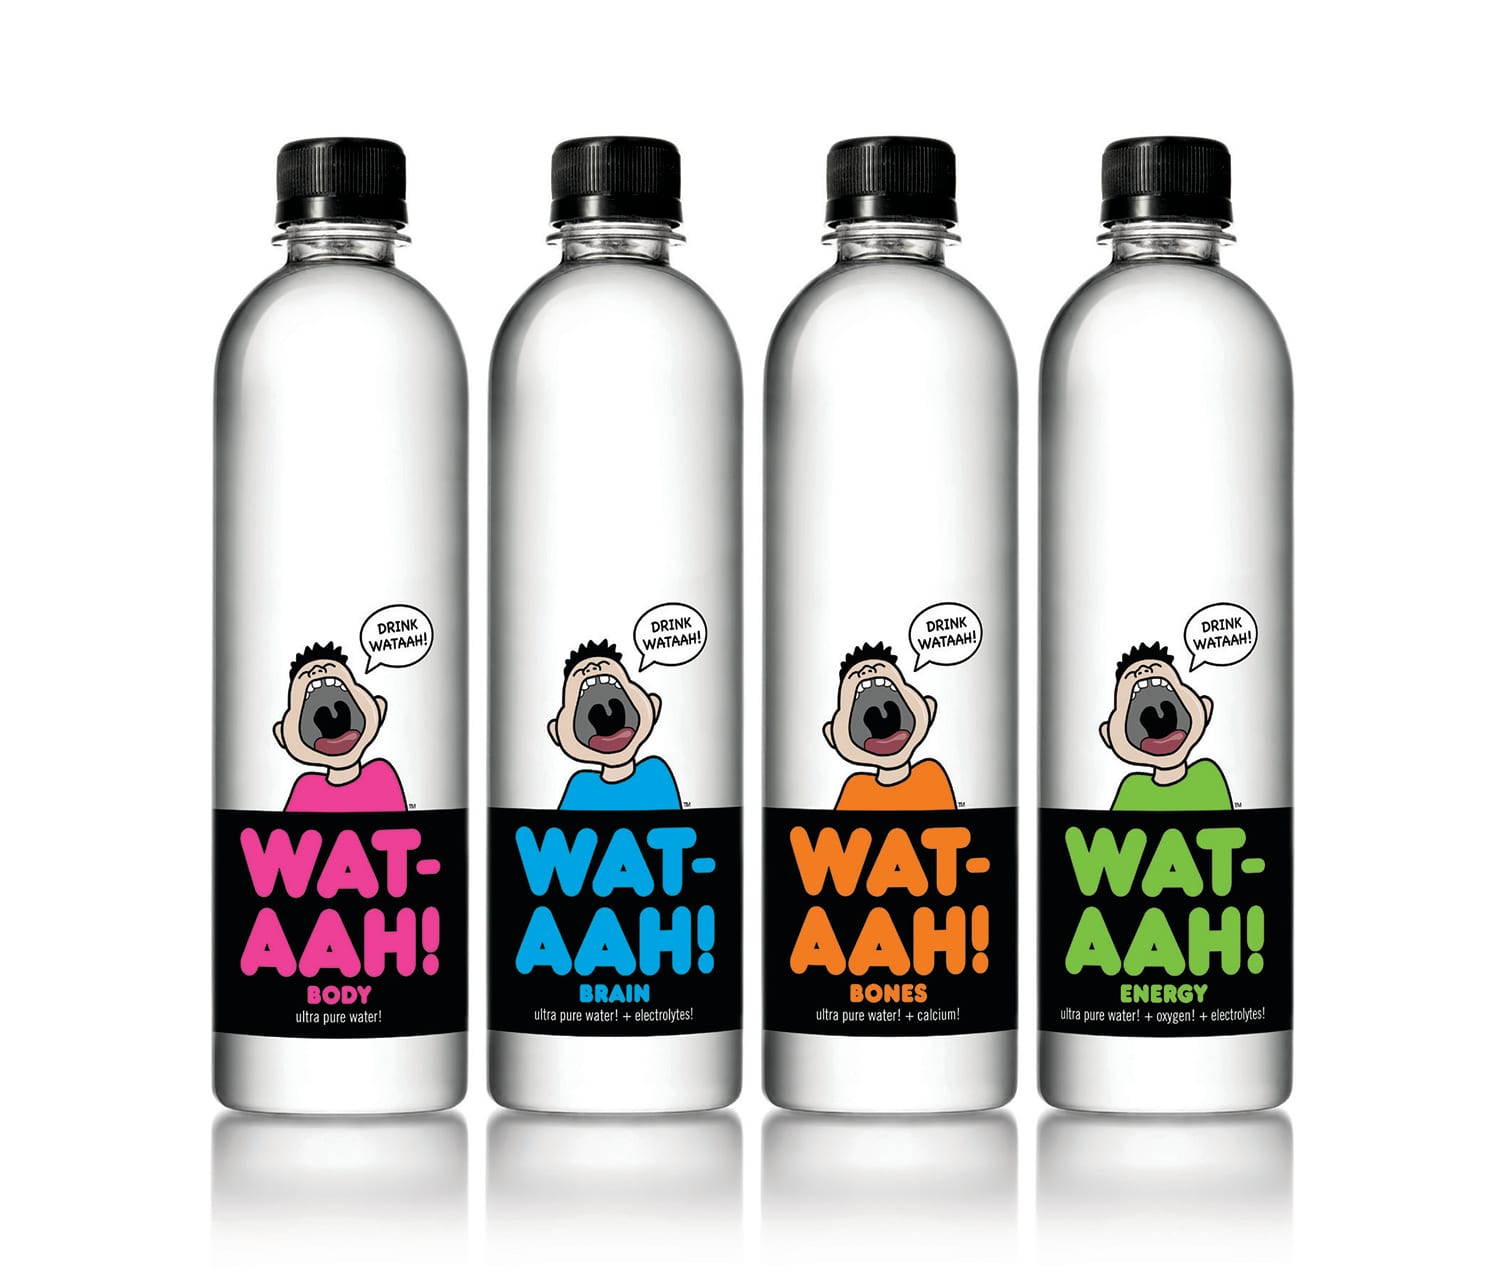 WAT-AAH! Product Launch